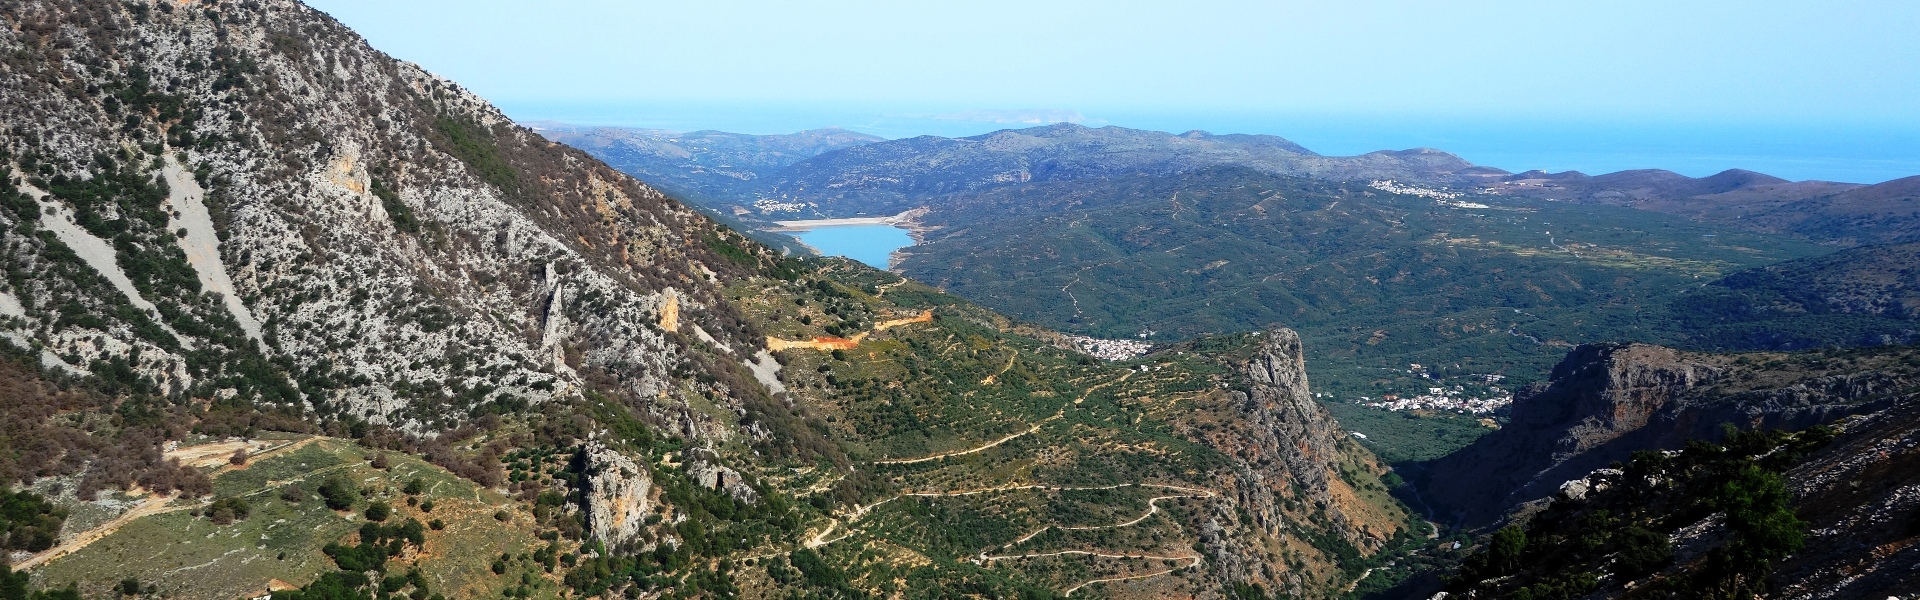 the view of north shor of Crete from Ambelos Lasithi plateau